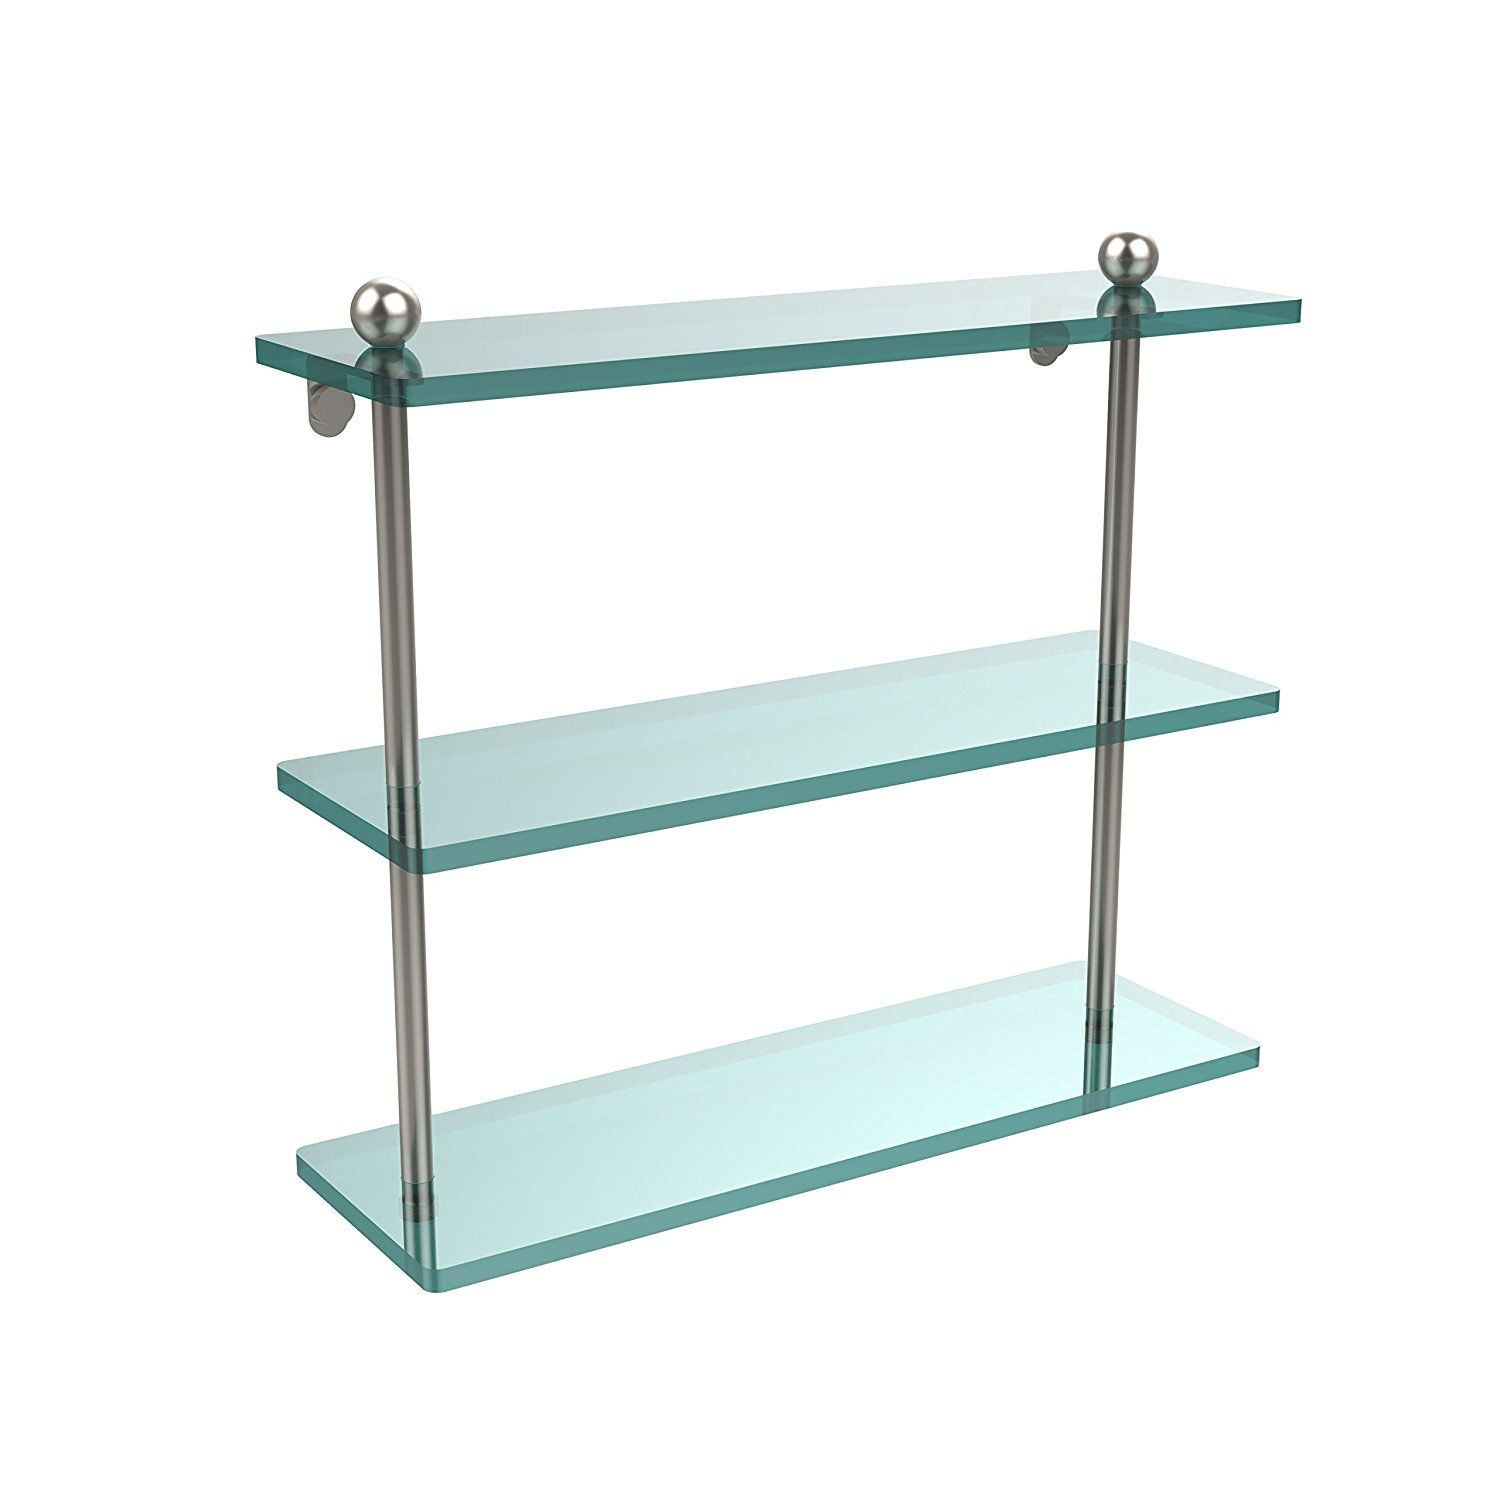 Allied brass prsn x triple glass shelf satin nickel ueueue see